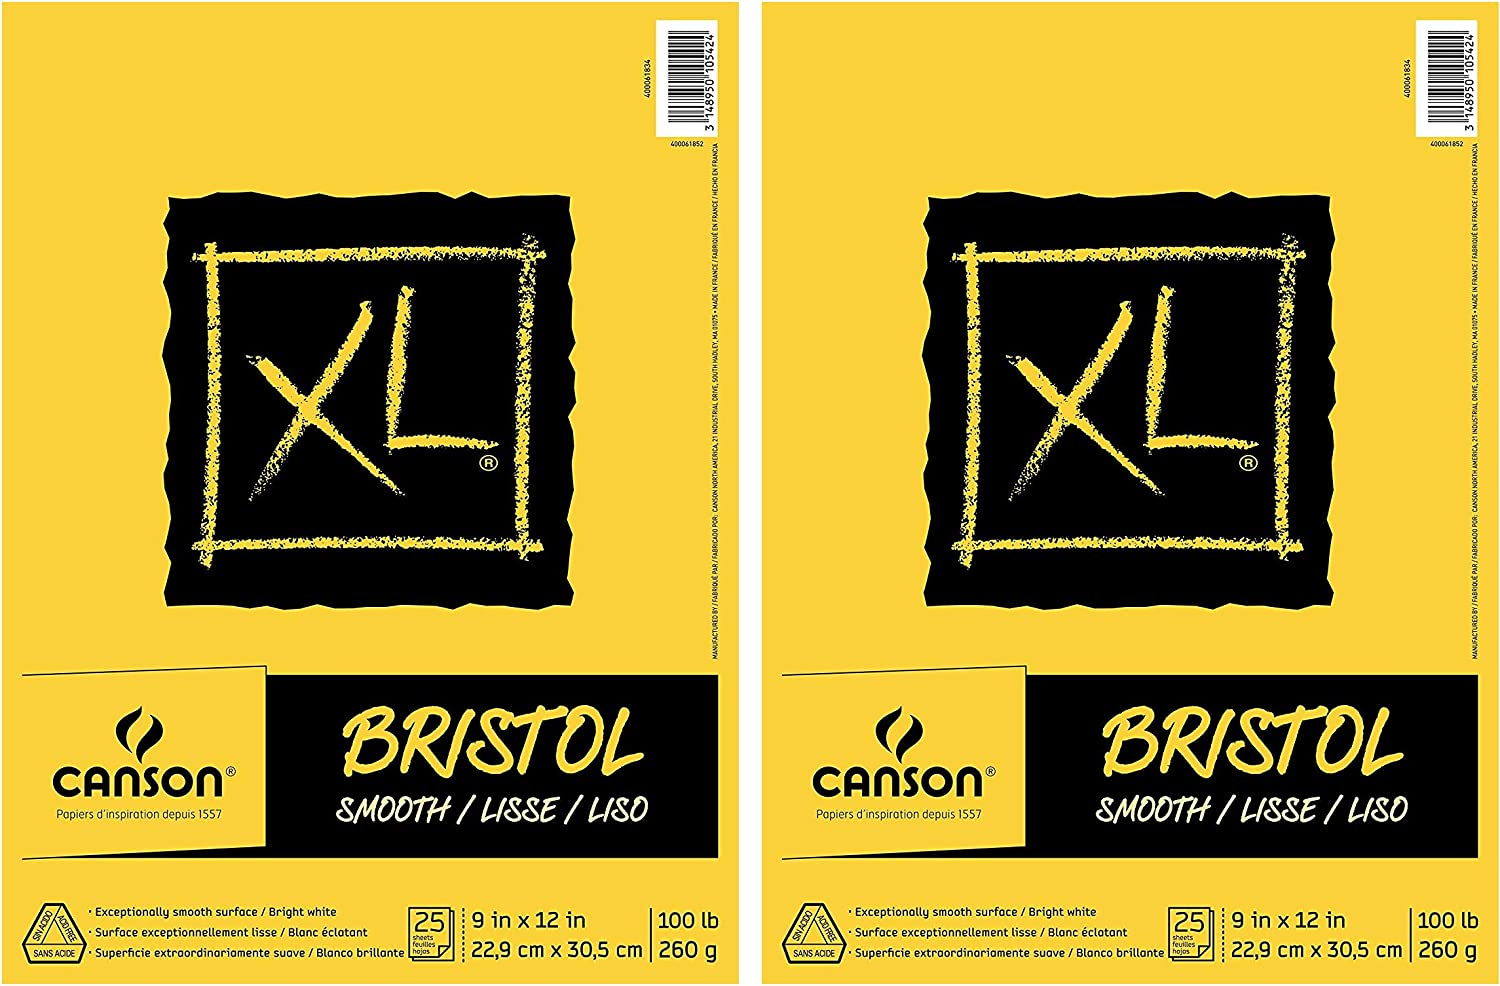 Canson XL Series Bristol Pad Smooth Finish 19 x 24 Inch 25 Sheets Bright White Fold Over Heavyweight Paper for Ink 100 Pound Marker or Pencil